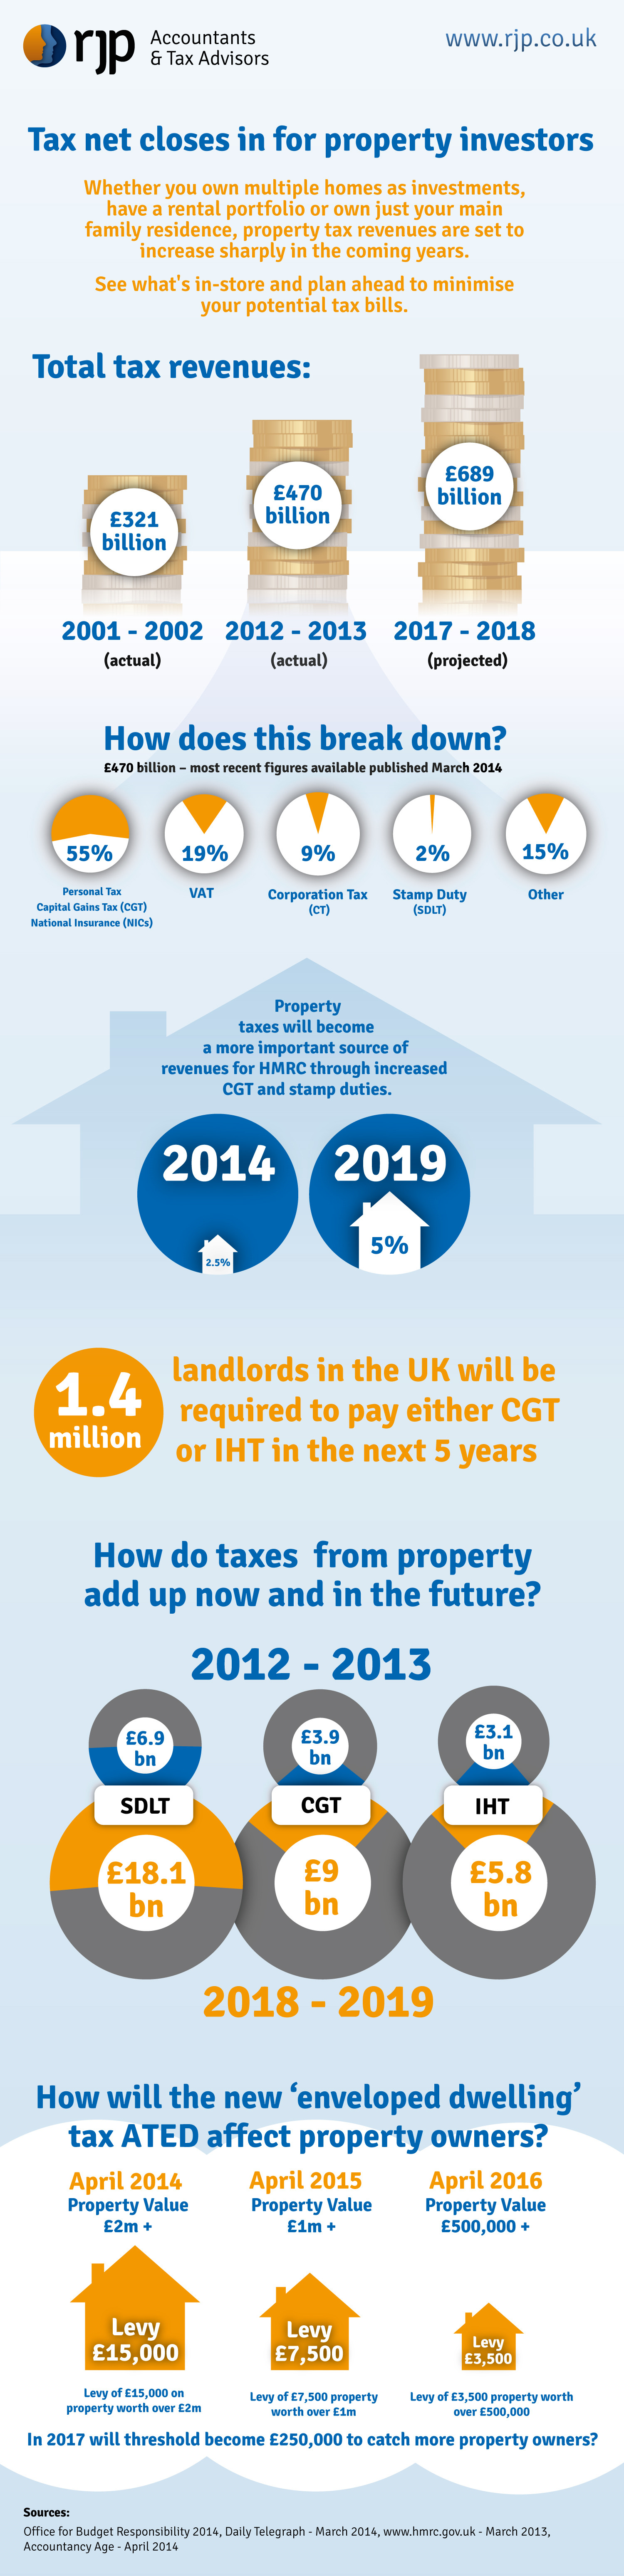 Tax Net Closes in For Property Investors Infographic